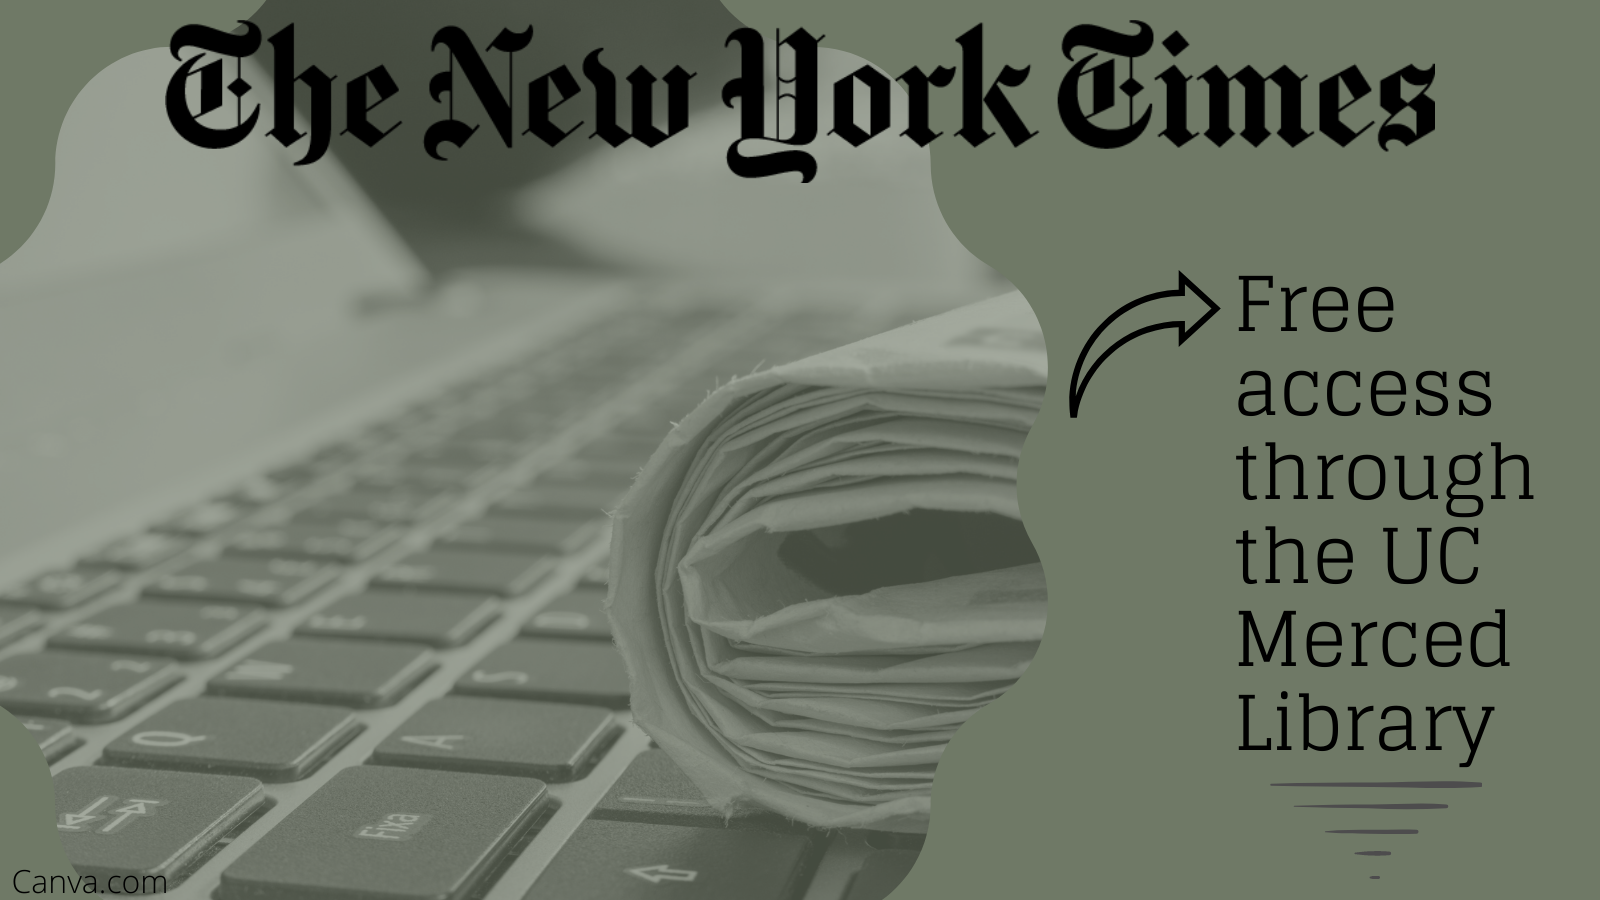 Access The New York Times (Web Version)